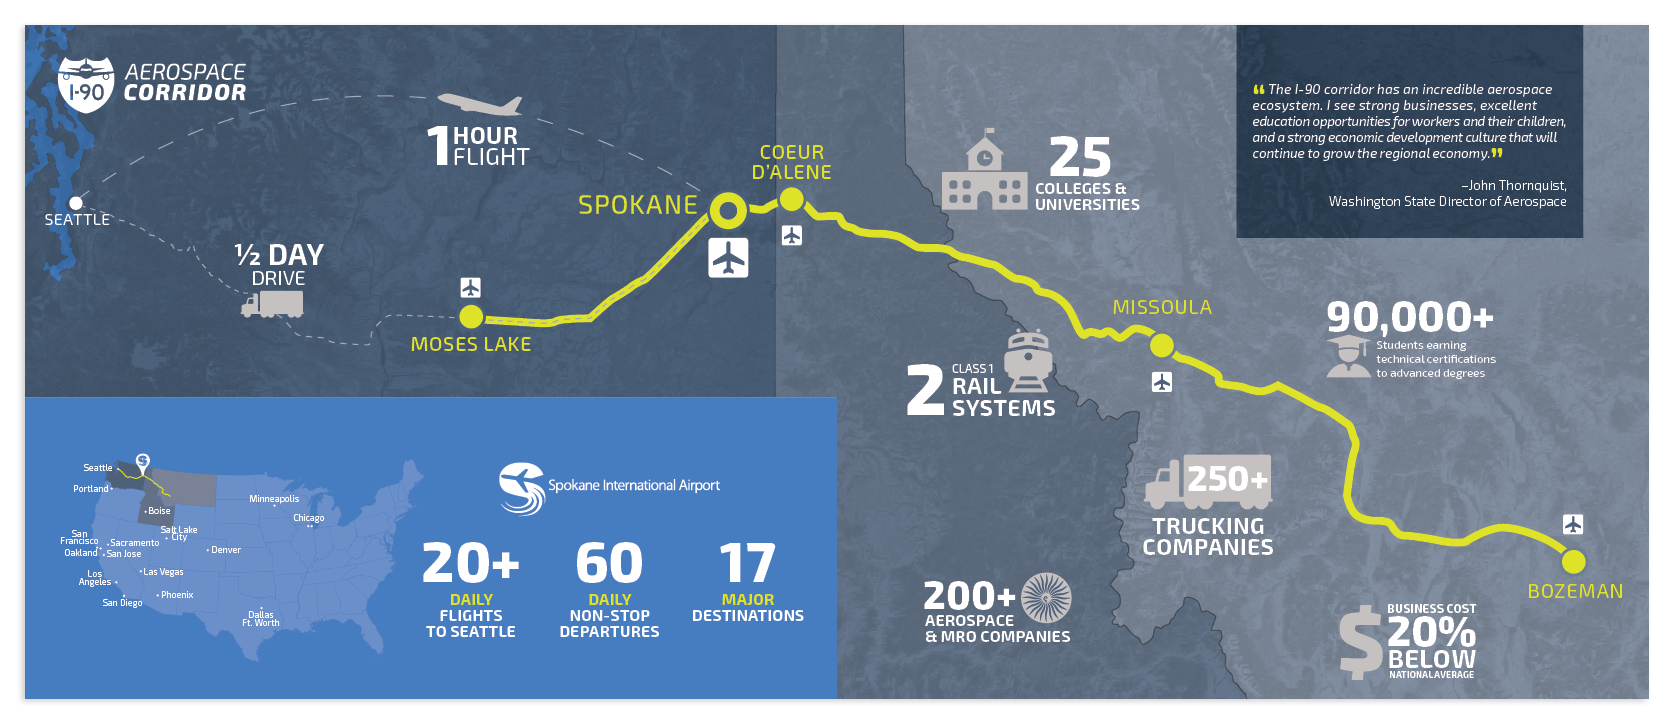 I-90 brochure and stats map for a corporate transportation company